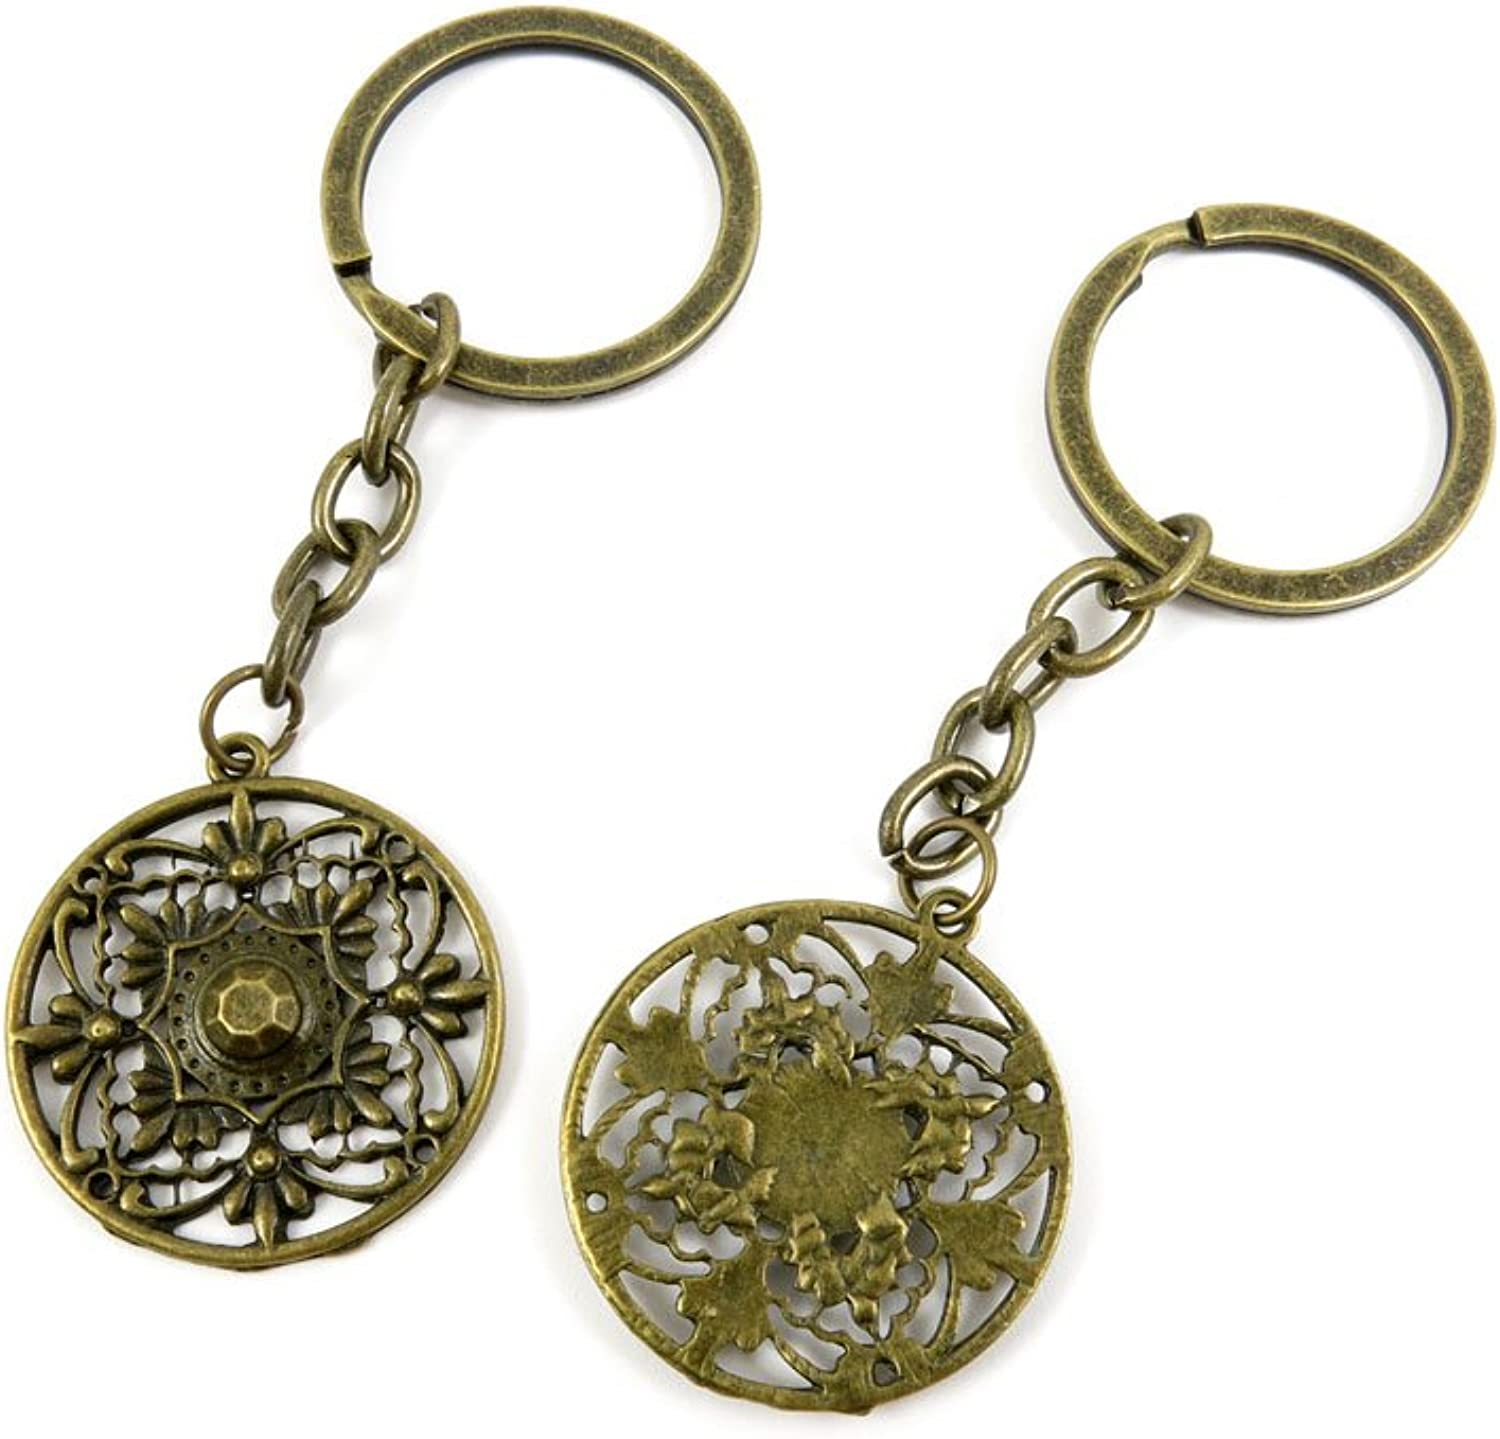 100 PCS Keyrings Keychains Key Ring Chains Tags Jewelry Findings Clasps Buckles Supplies H6ND7 Round Flower Signs